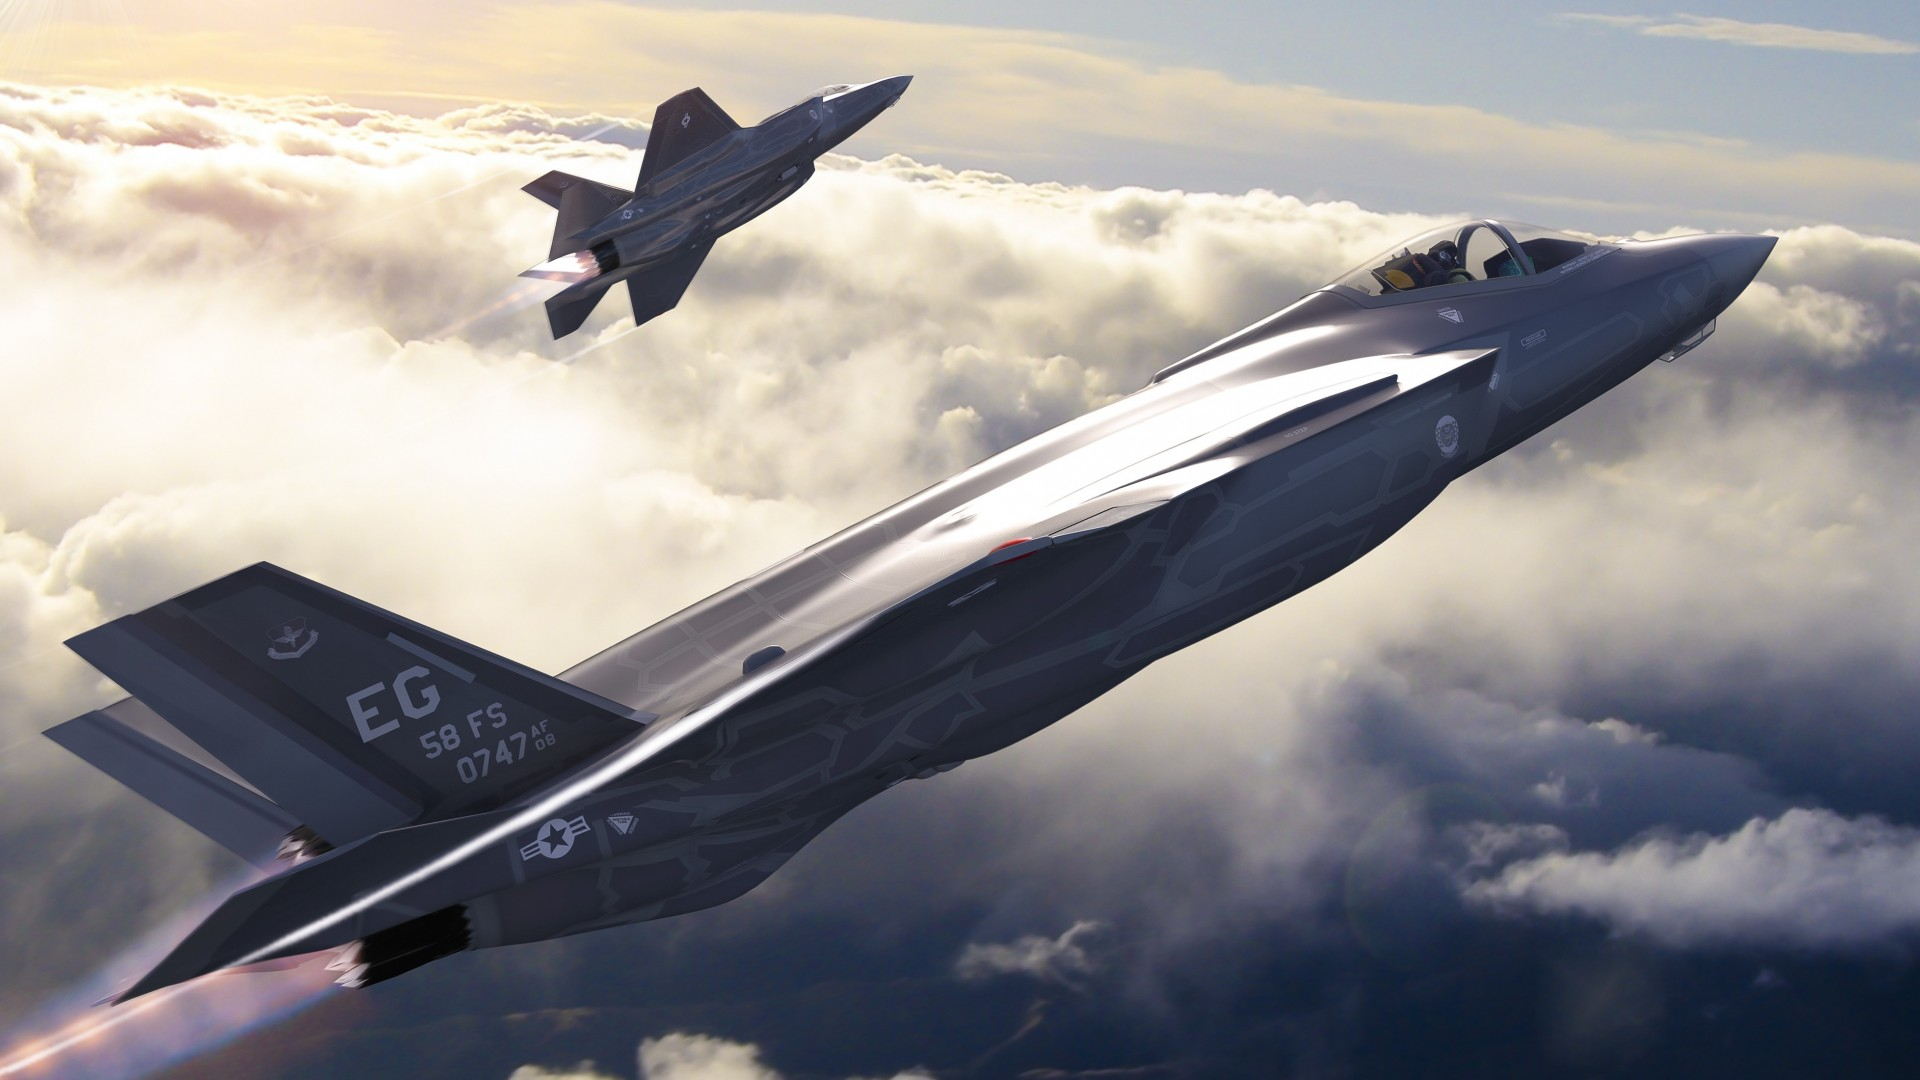 F-35-Flying-With-Clouds-Cool-Image